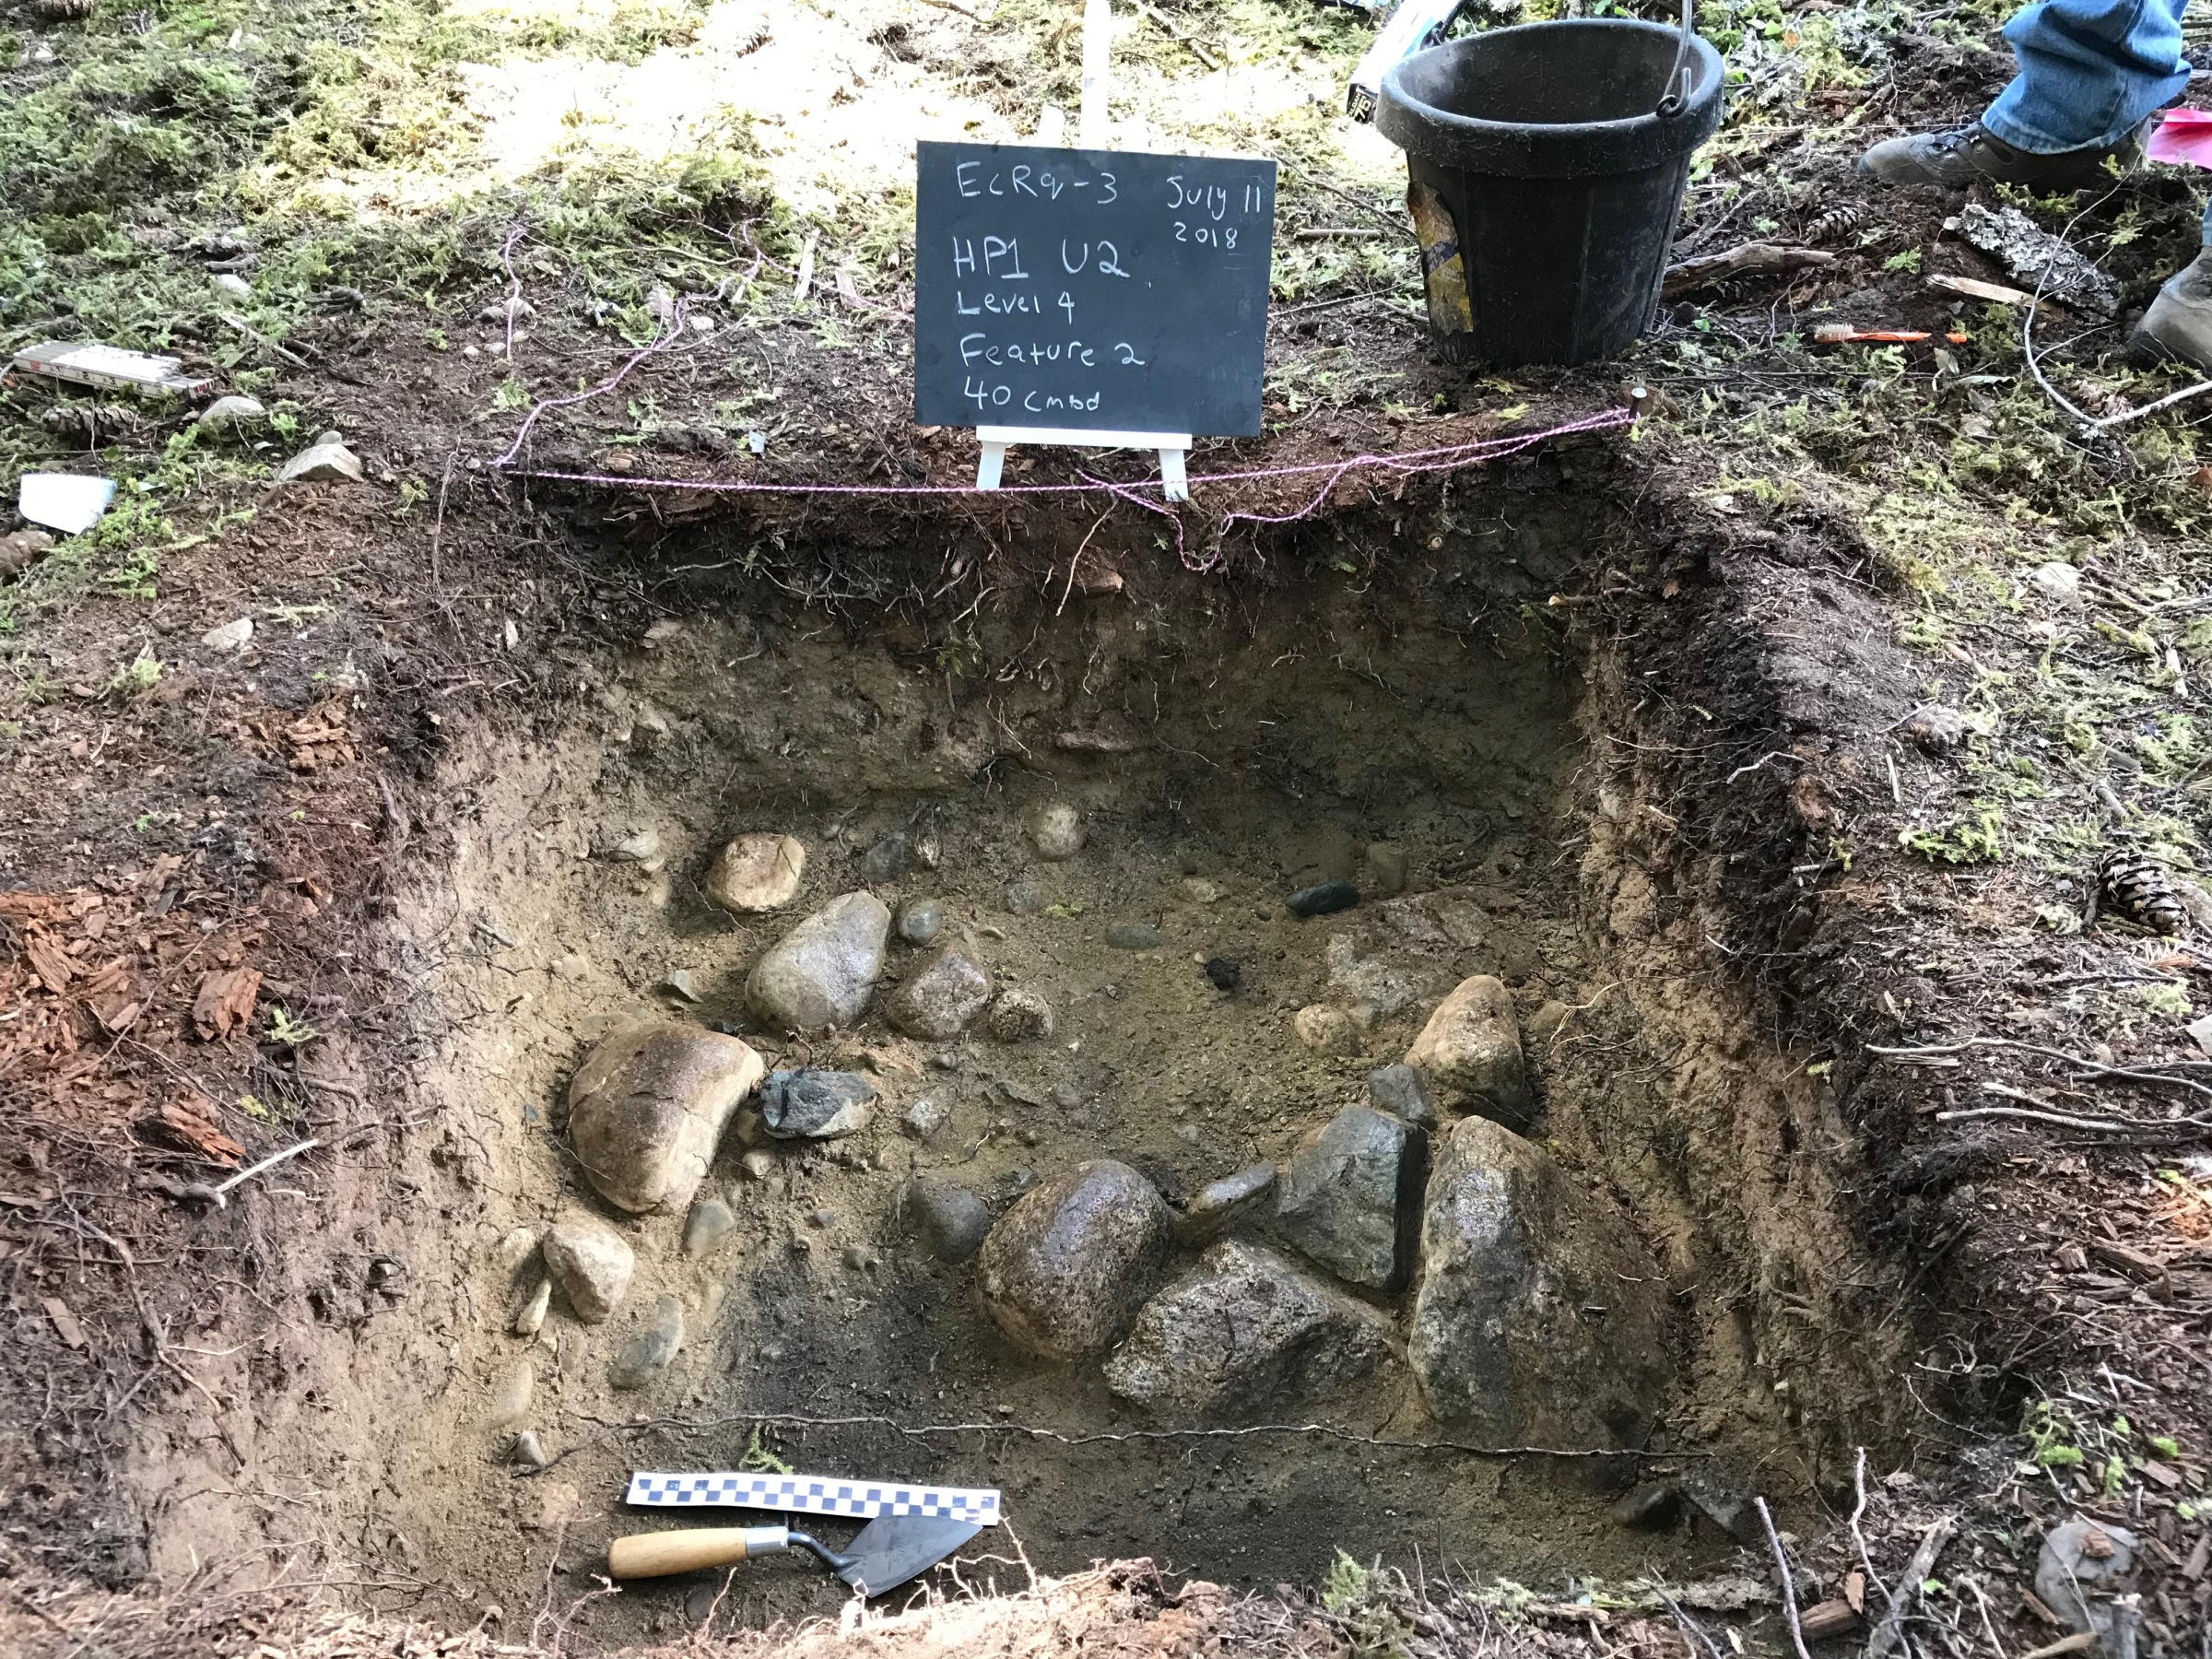 Excavation of Lil'wat people's village near Pemperton, photo by archeology instructor Bill Angelbeck